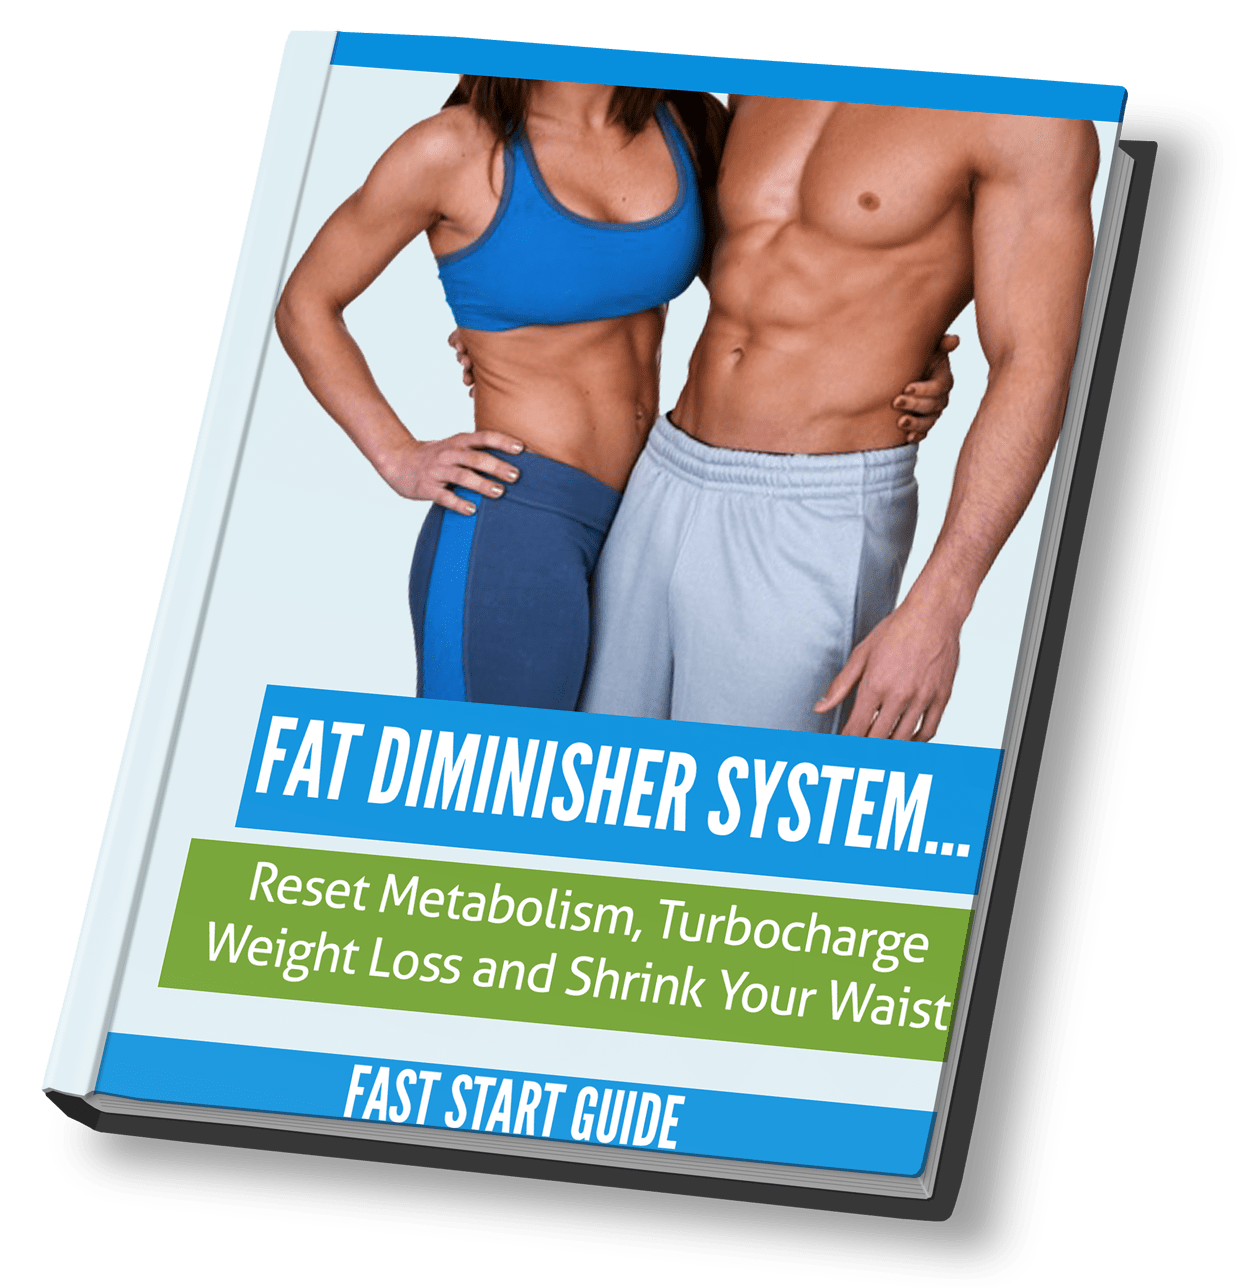 Wes Virgin Fat Diminisher Reviews